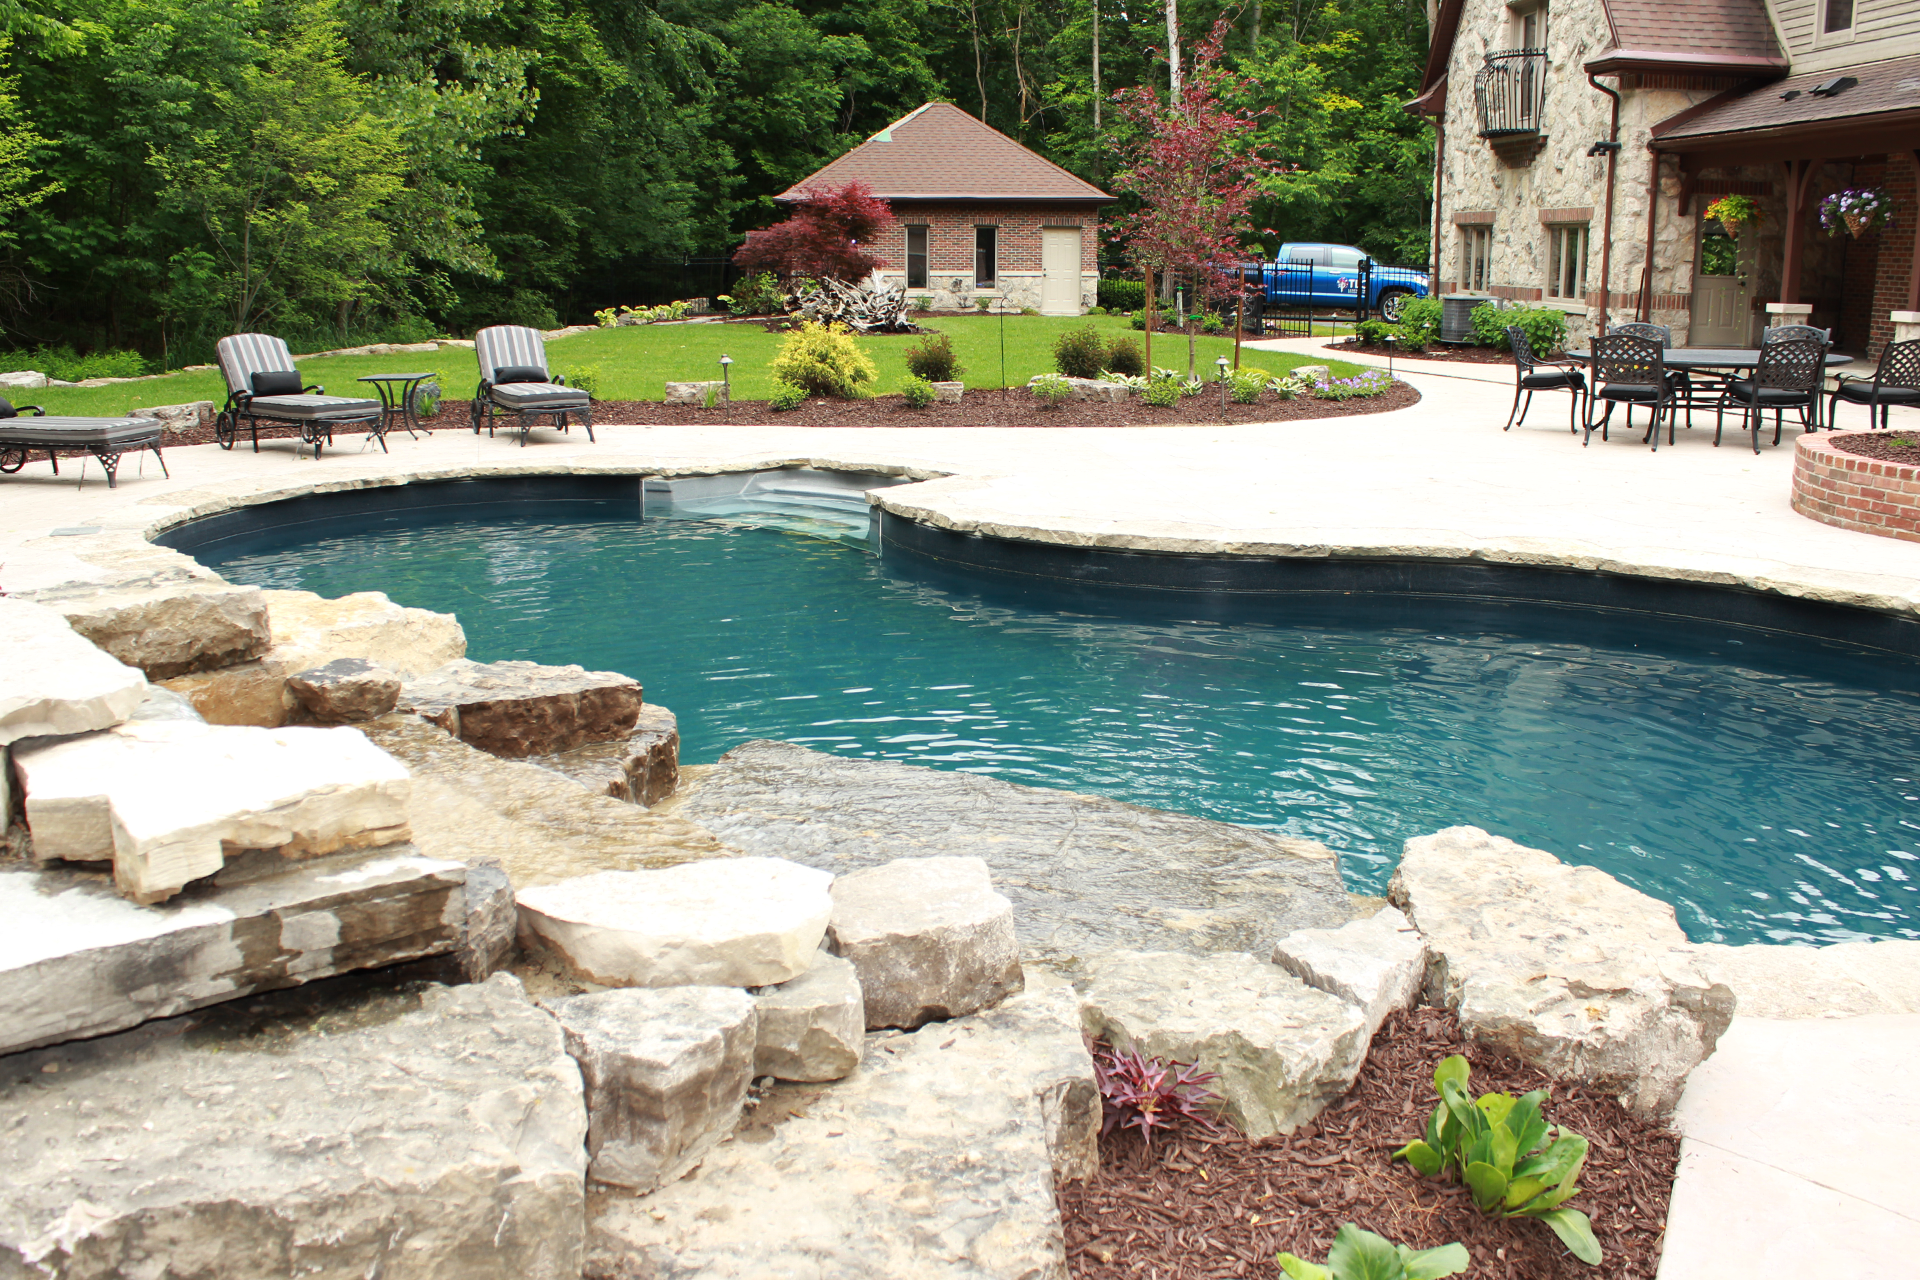 A pool in a natural setting by TLC Landscaping using natural stone with water feature